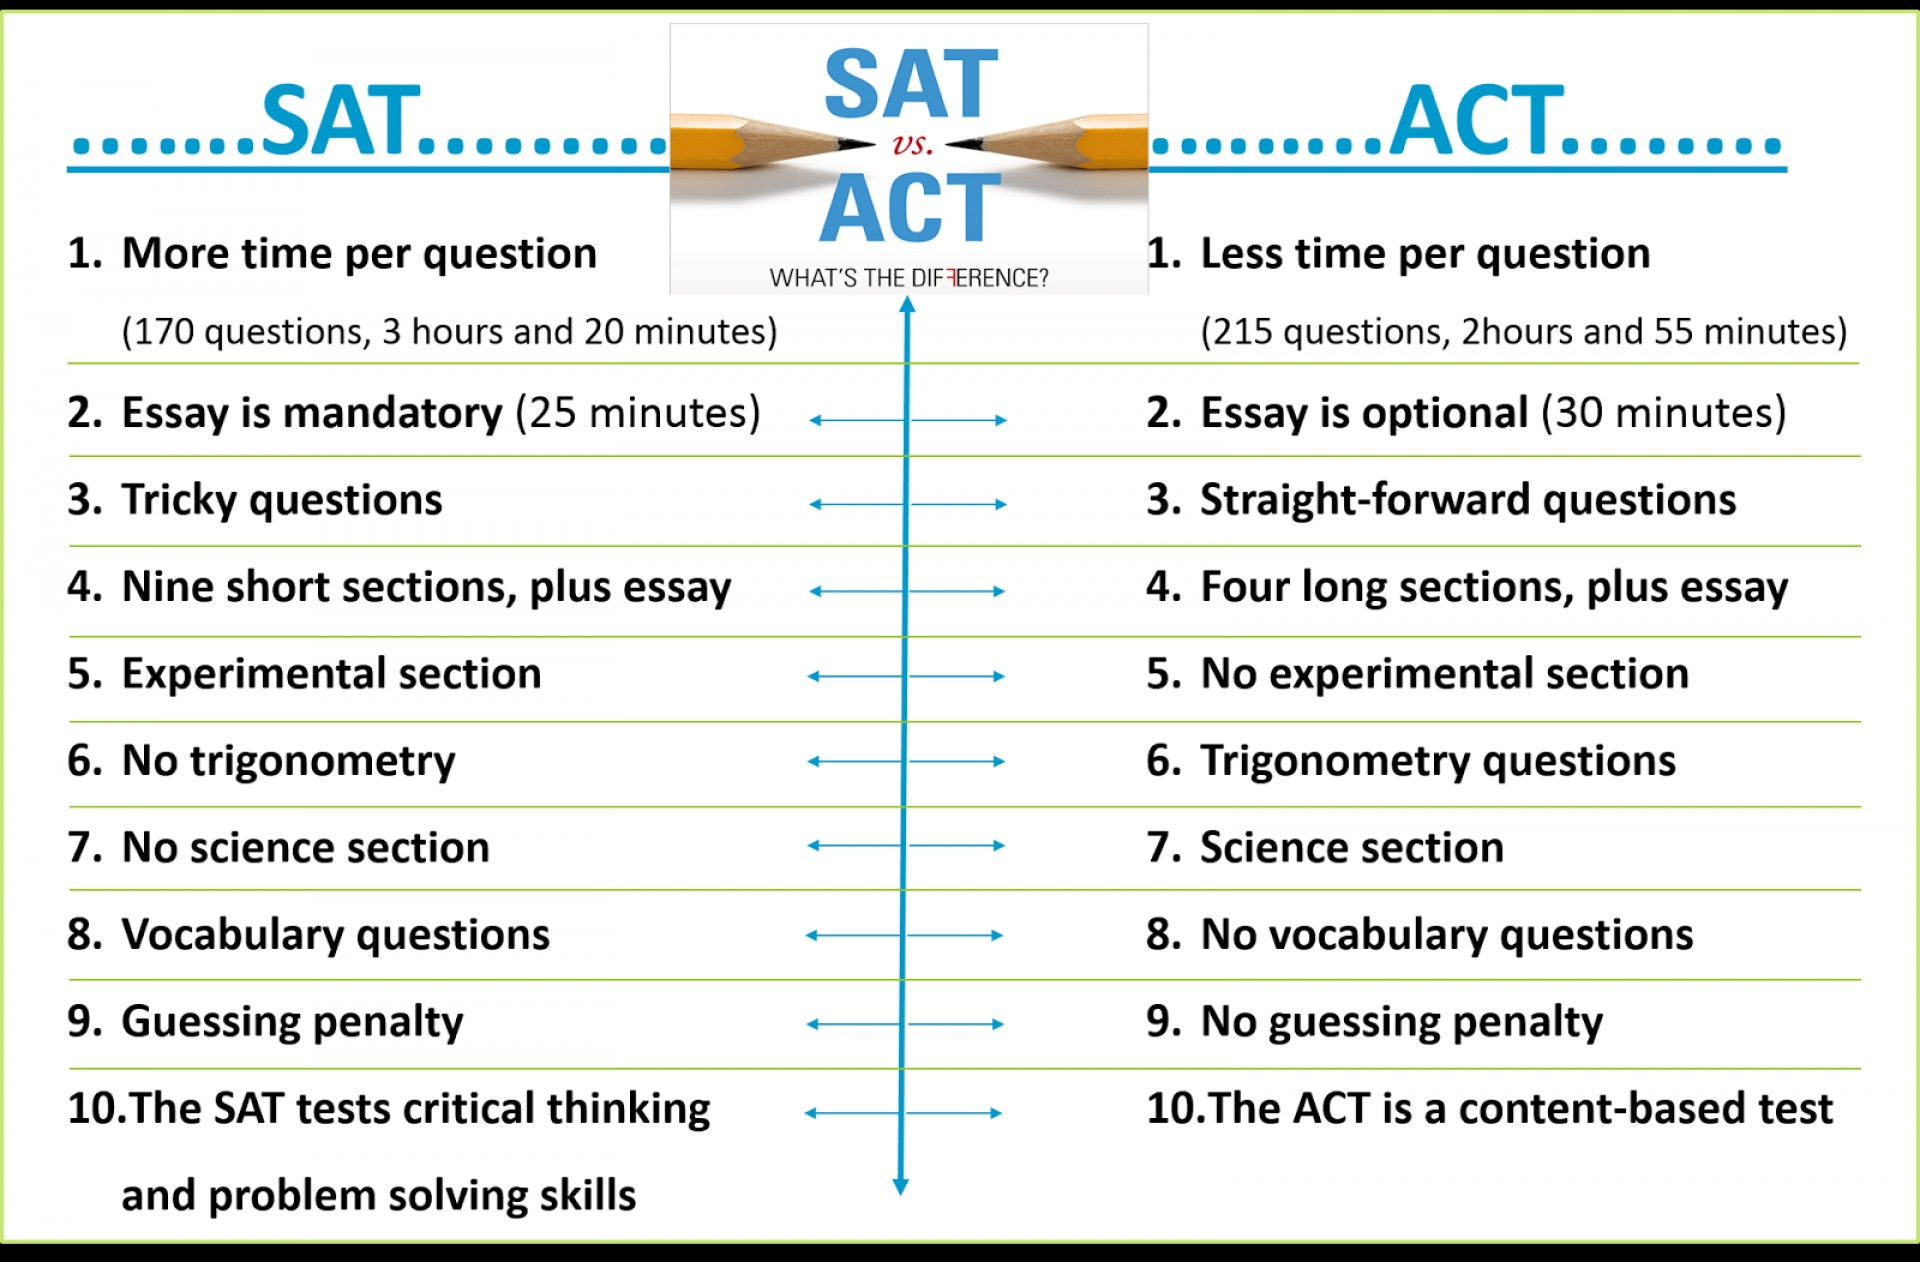 005 Essay Example Act Time Sat Vs  Unique Limit What Does With End 20171920